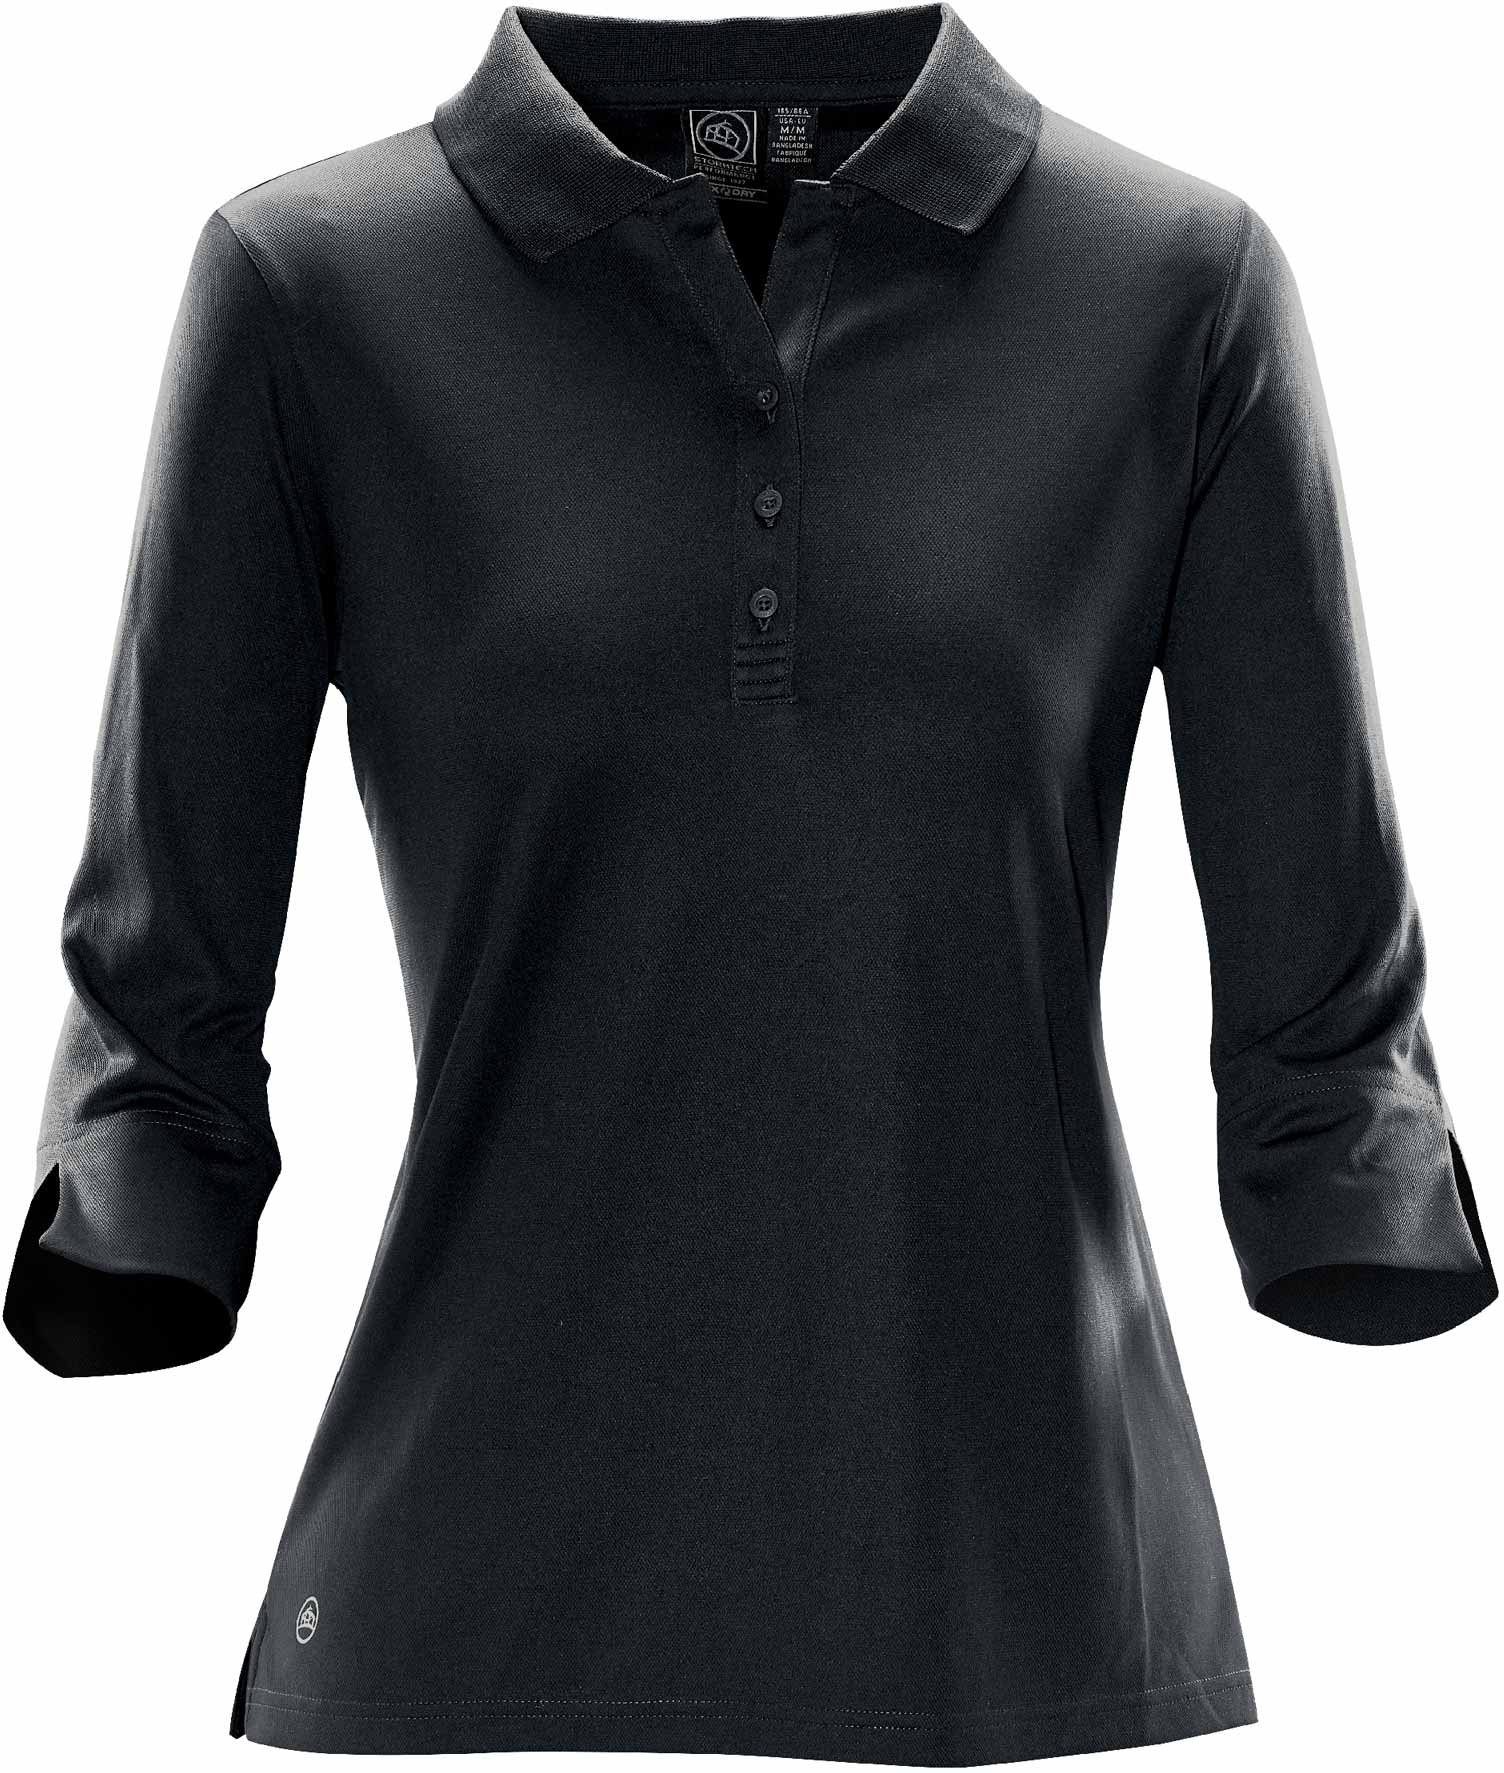 SP12  Eclipse L/S Polo (D) i Sort